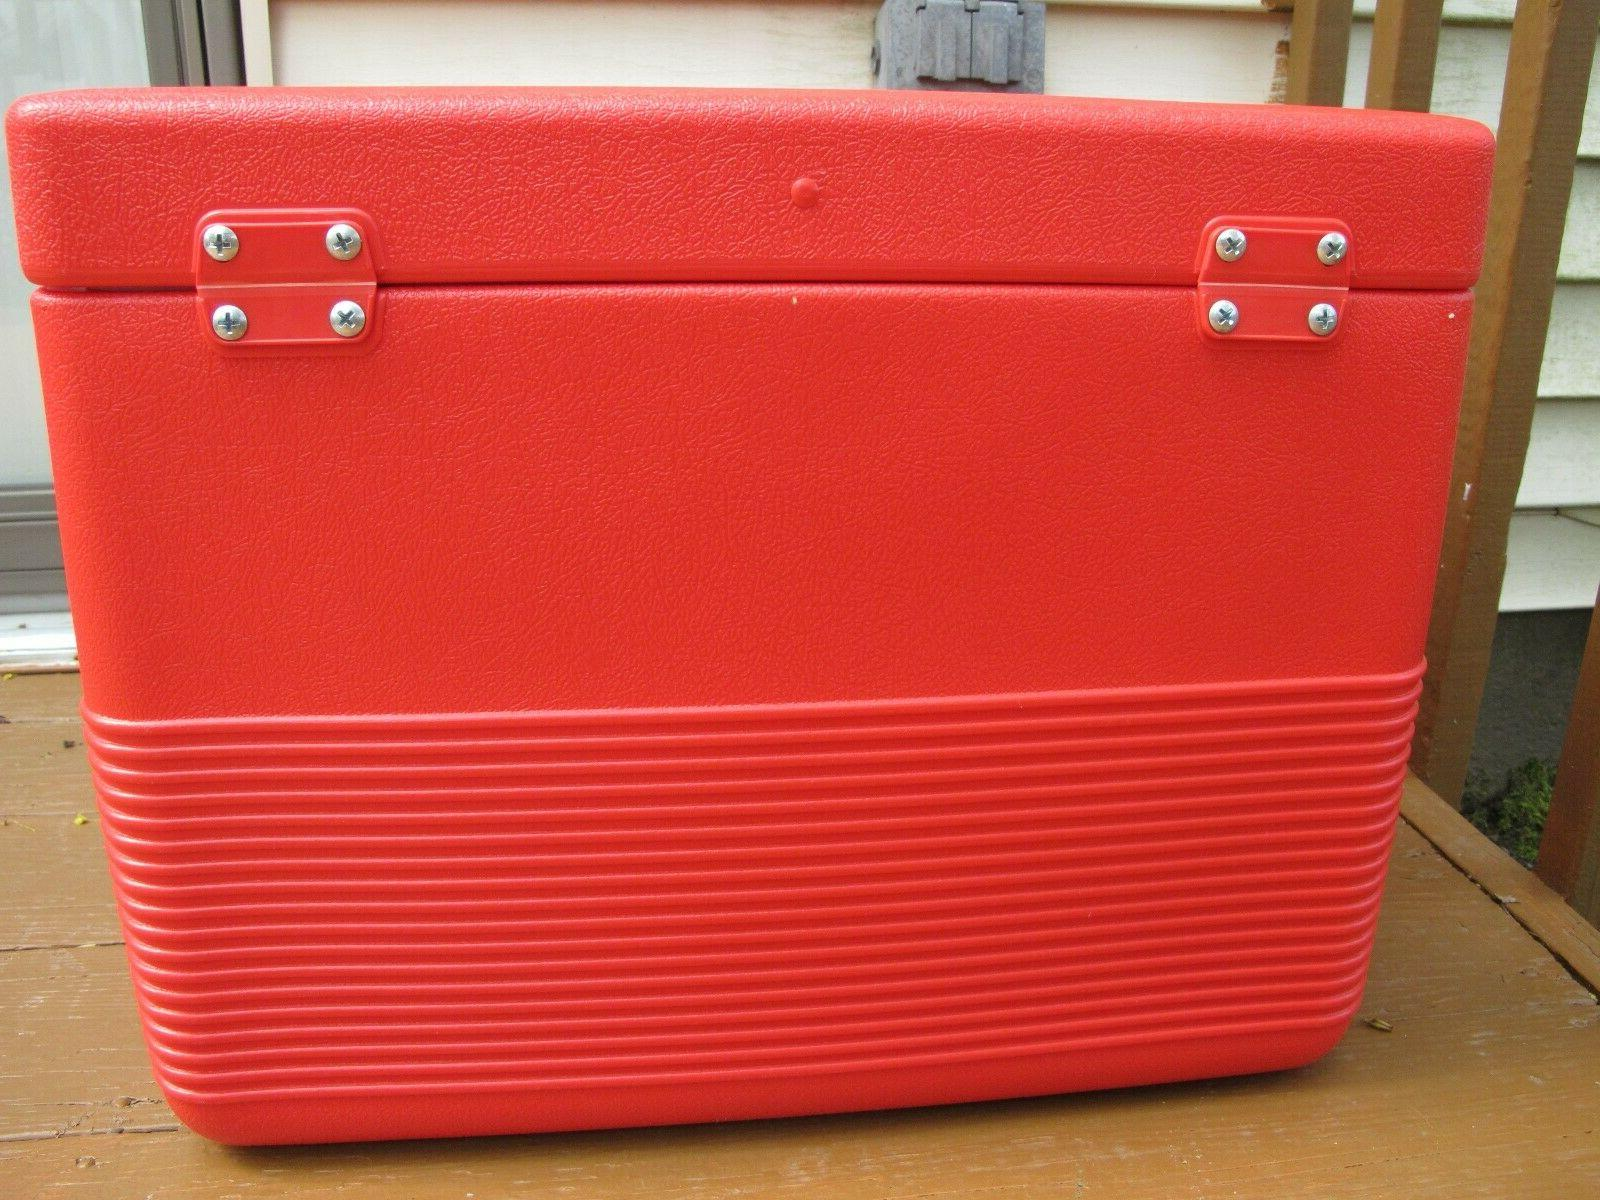 New Portable Thermo-Electric Warmer 5232